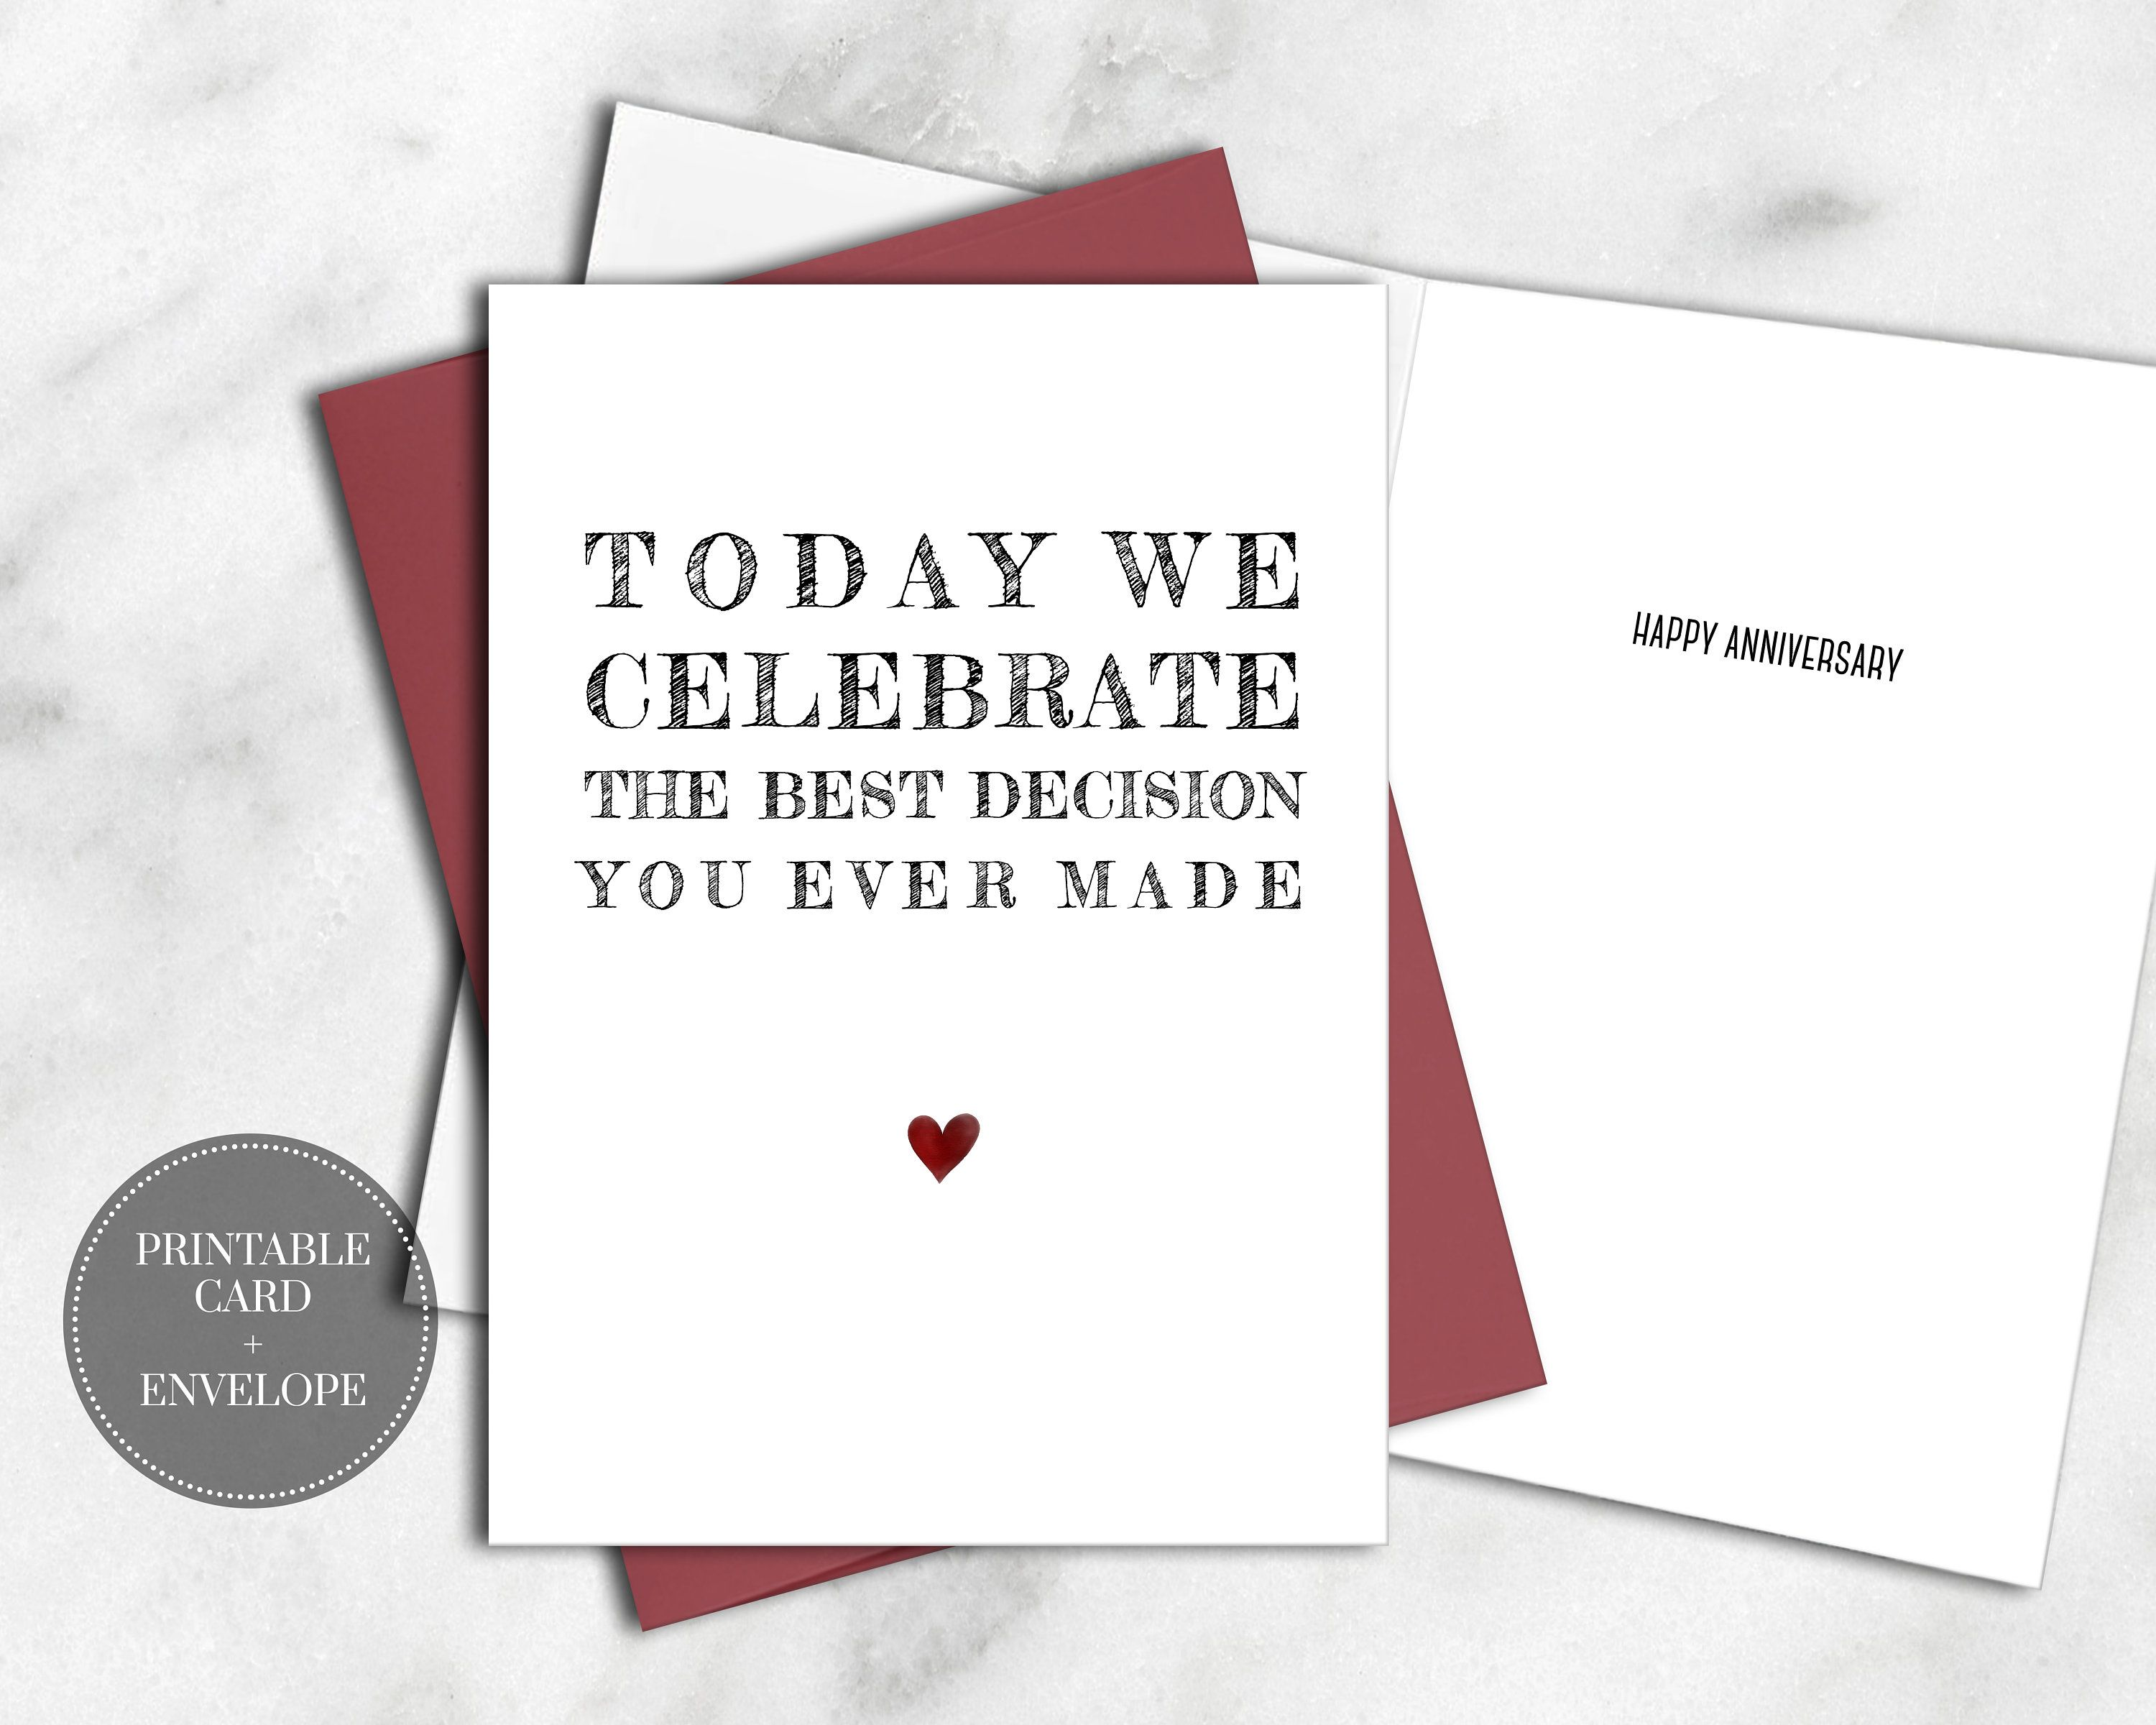 Printable Funny Anniversary Card For Him Husband Instant Download Best Decision Funny Anniversary Cards Printable Funny Anniversary Cards Anniversary Cards For Him